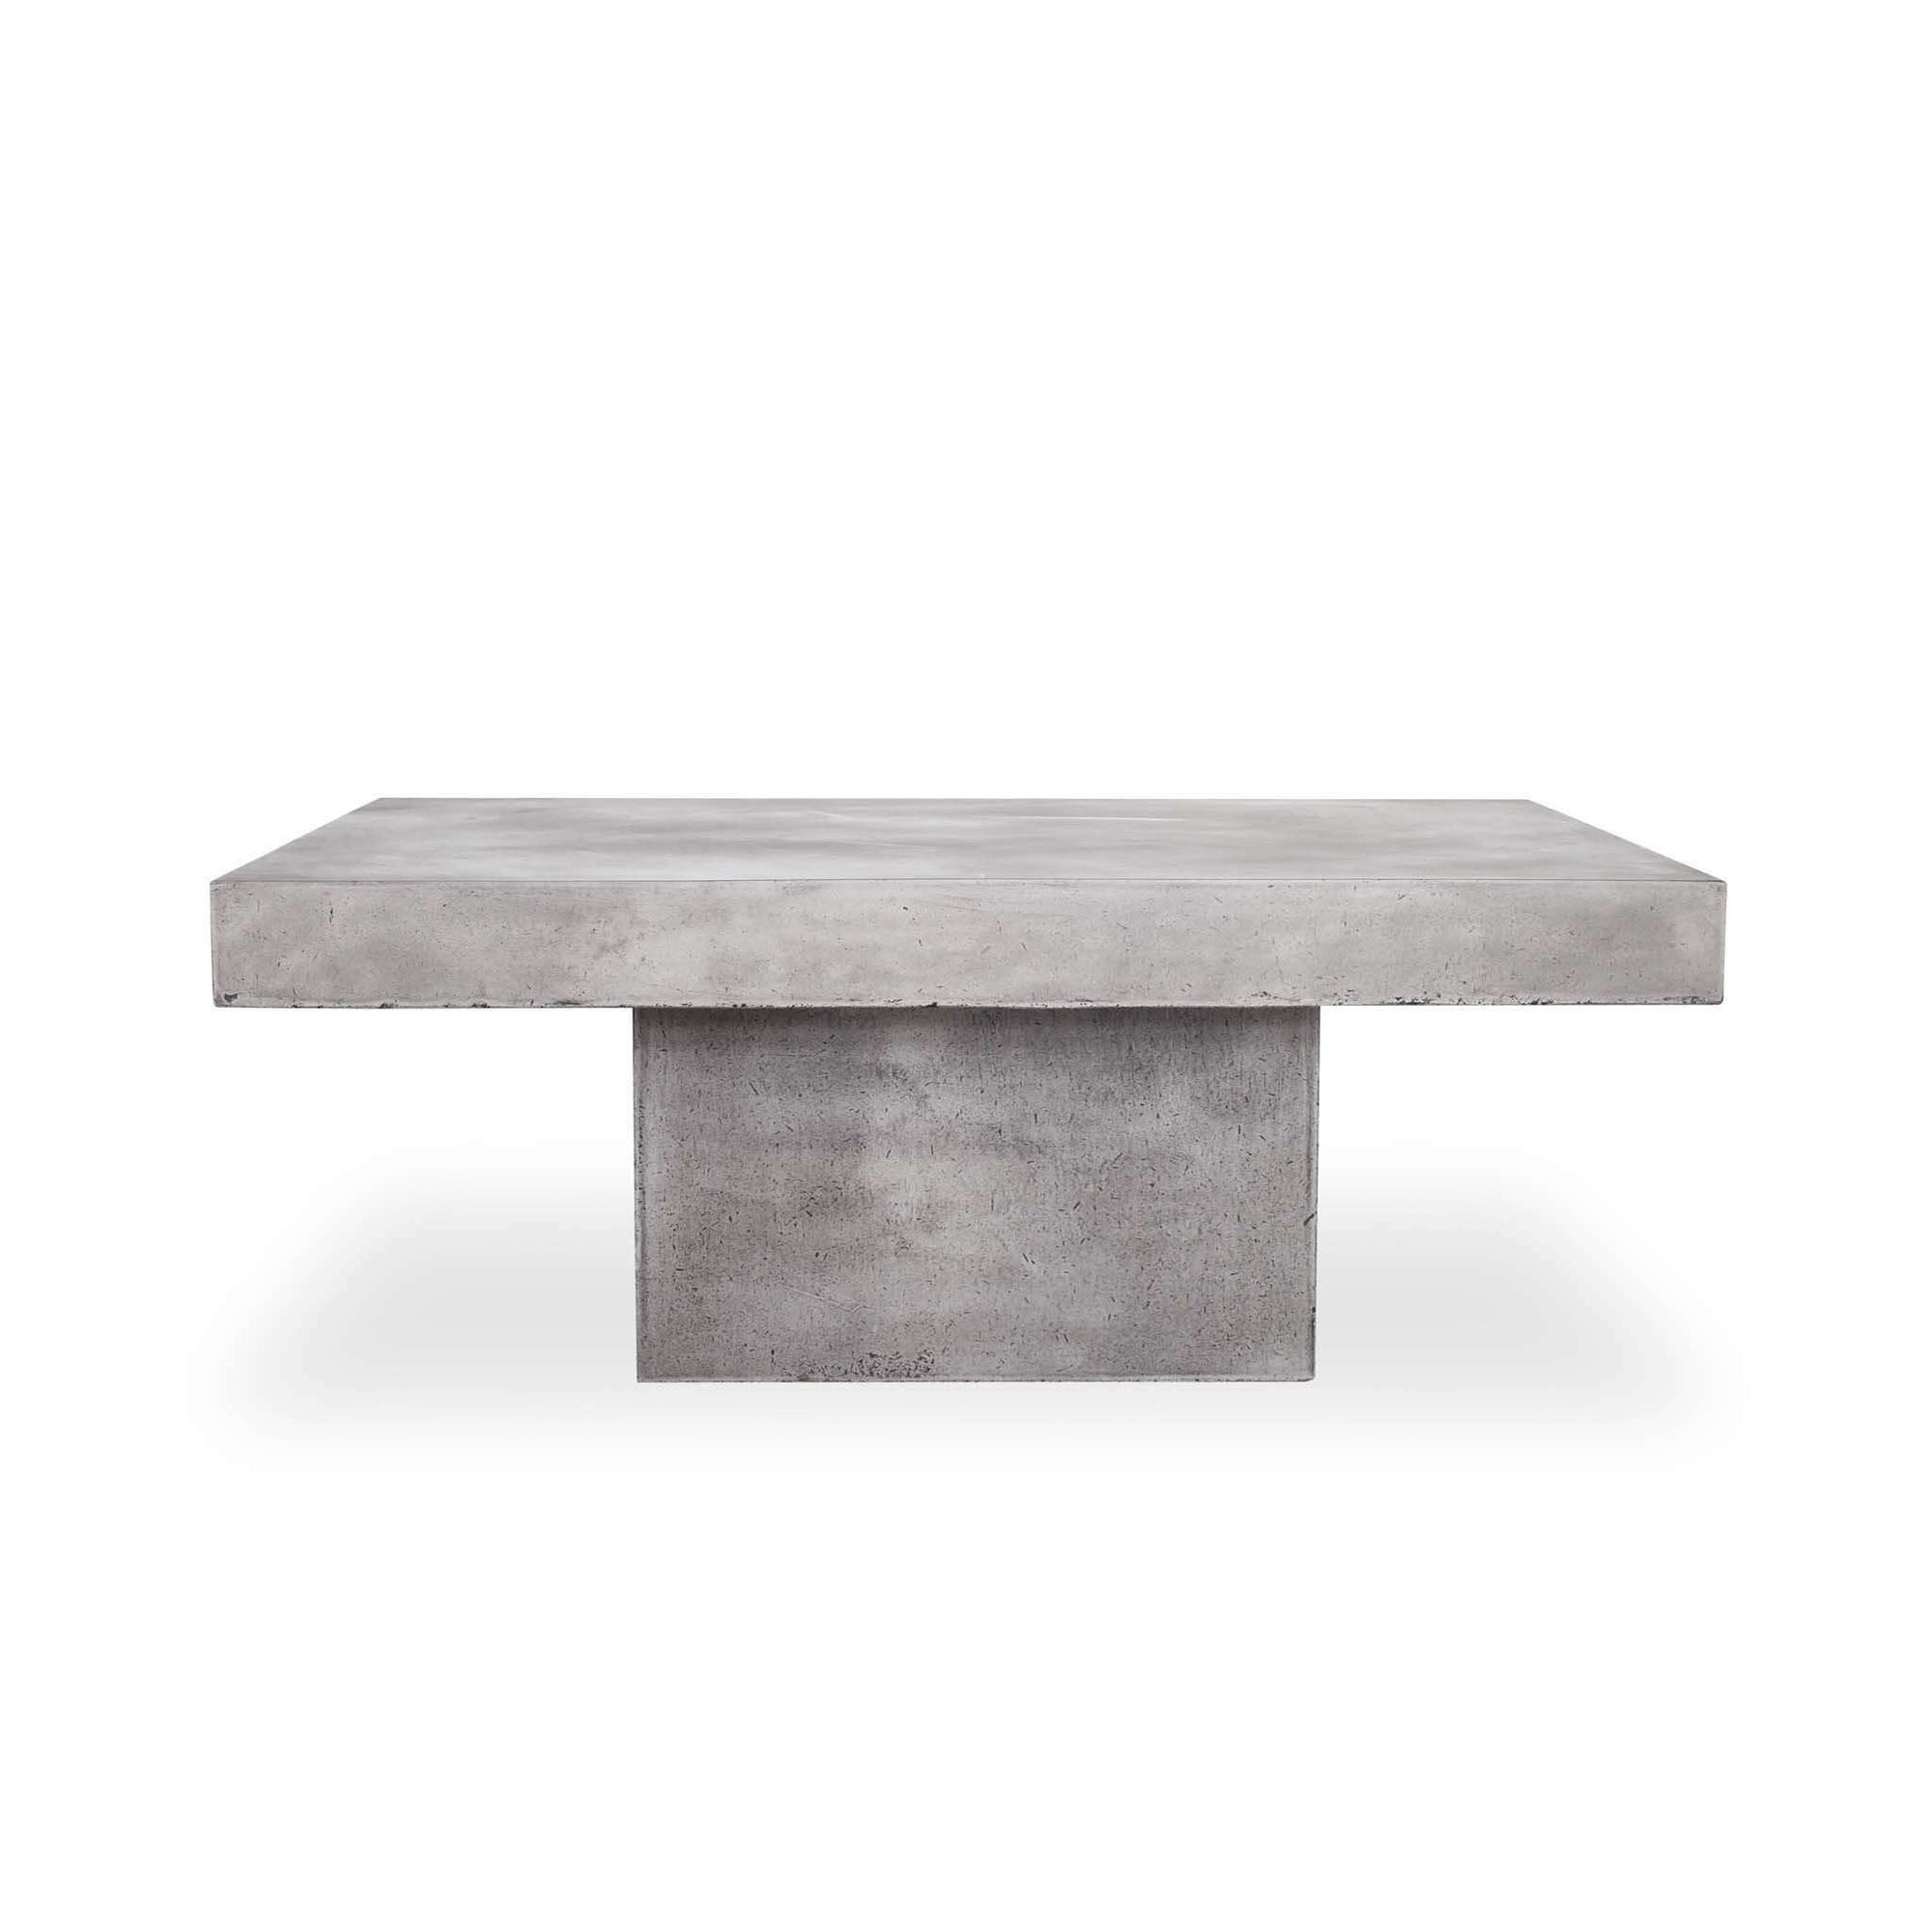 MOES-MAXIMA COFFEE TABLE-Outdoor Coffee Tables-MODTEMPO